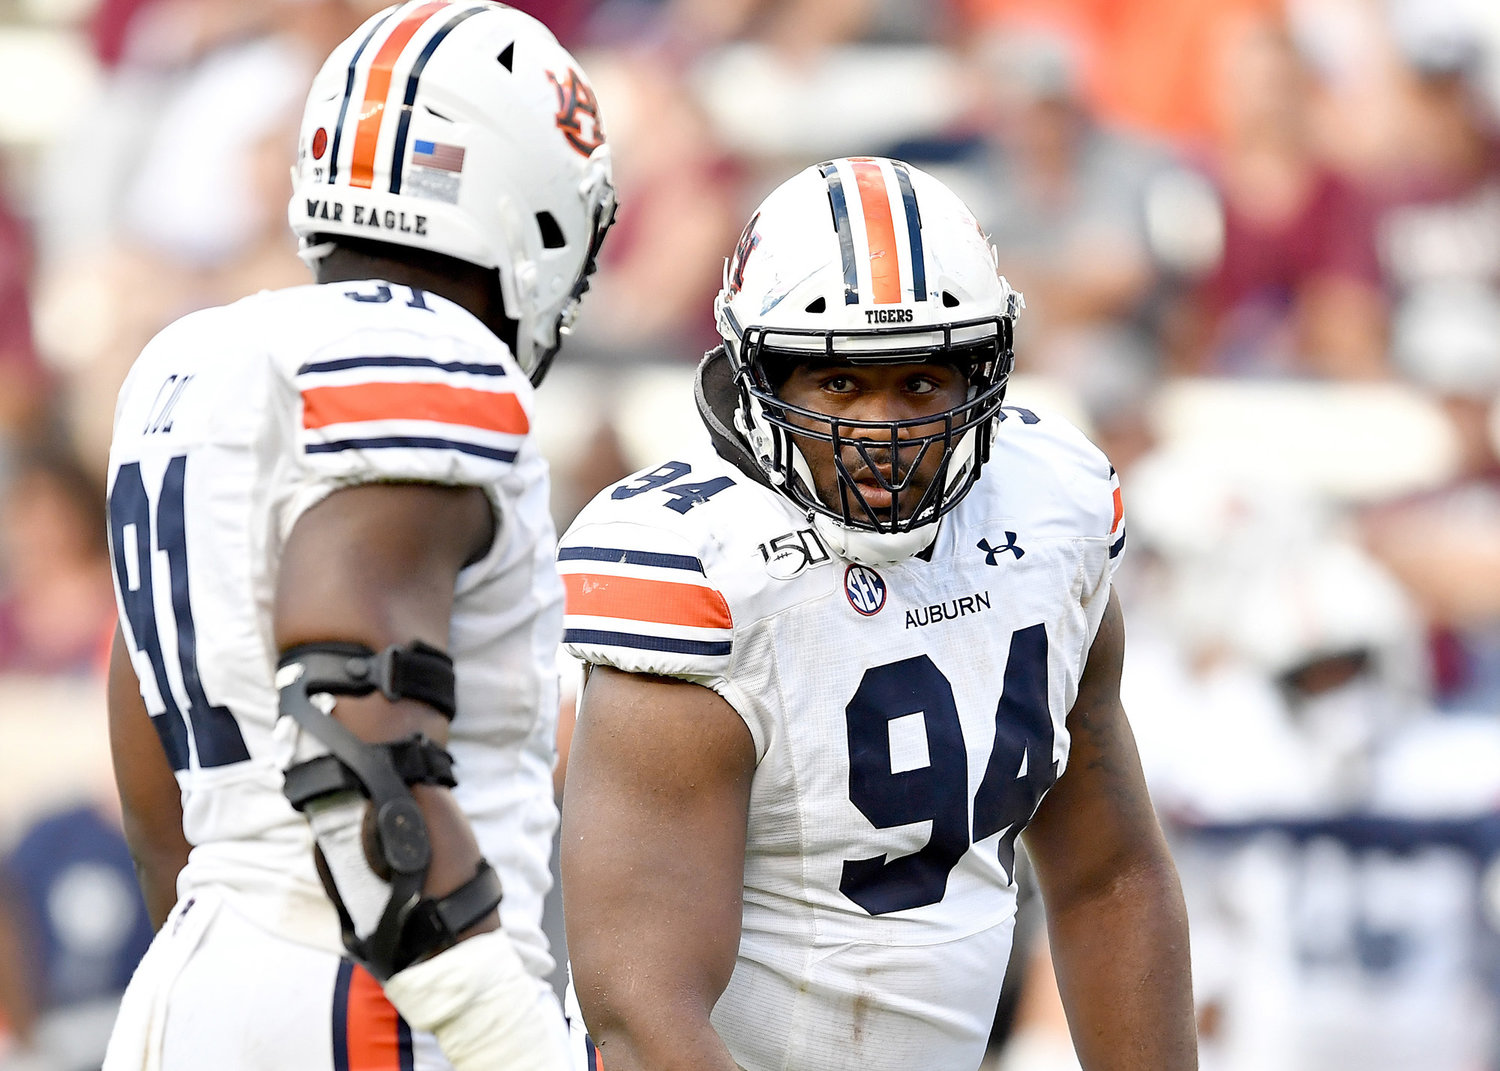 Auburn Tigers defensive tackle Tyrone Truesdell (94) and defensive end Nick Coe (91) discuss strategy during the second half of an NCAA football game Saturday, Sept. 21, 2019, at Kyle Field in College Station Texas. Auburn wins 28-20.